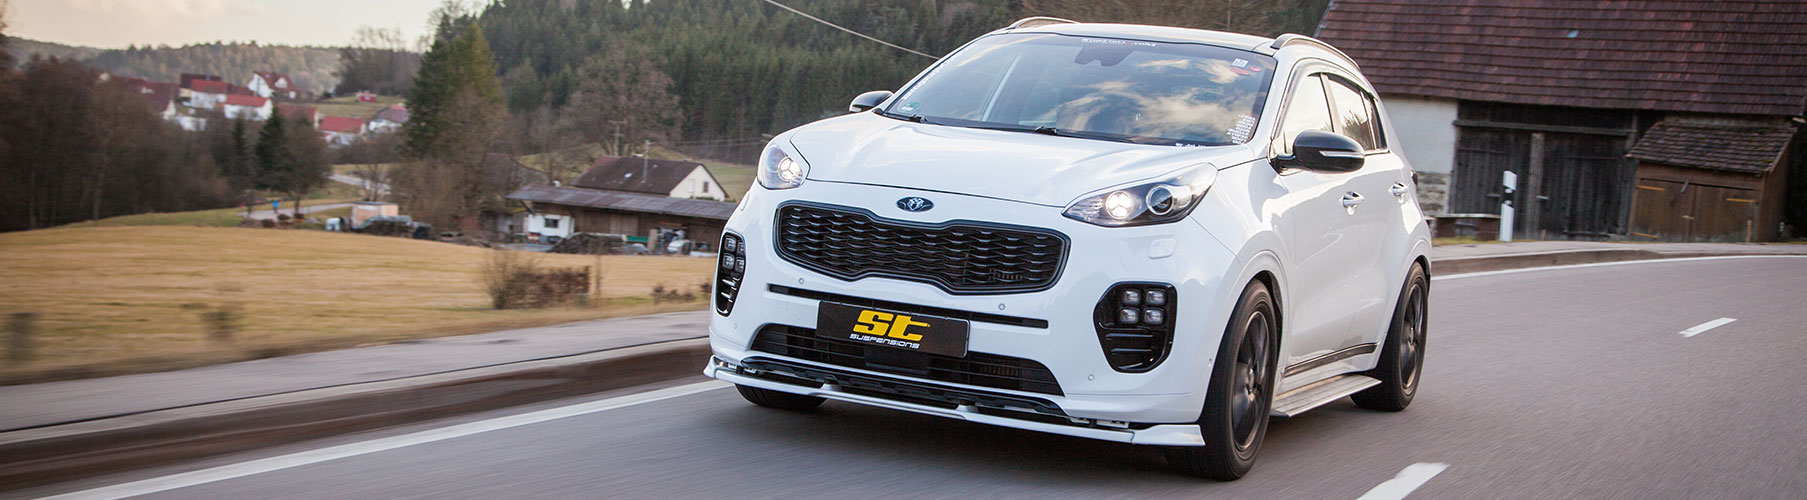 ST suspensions offers the ST XA coilover kit for all KIA Sportage (QL)